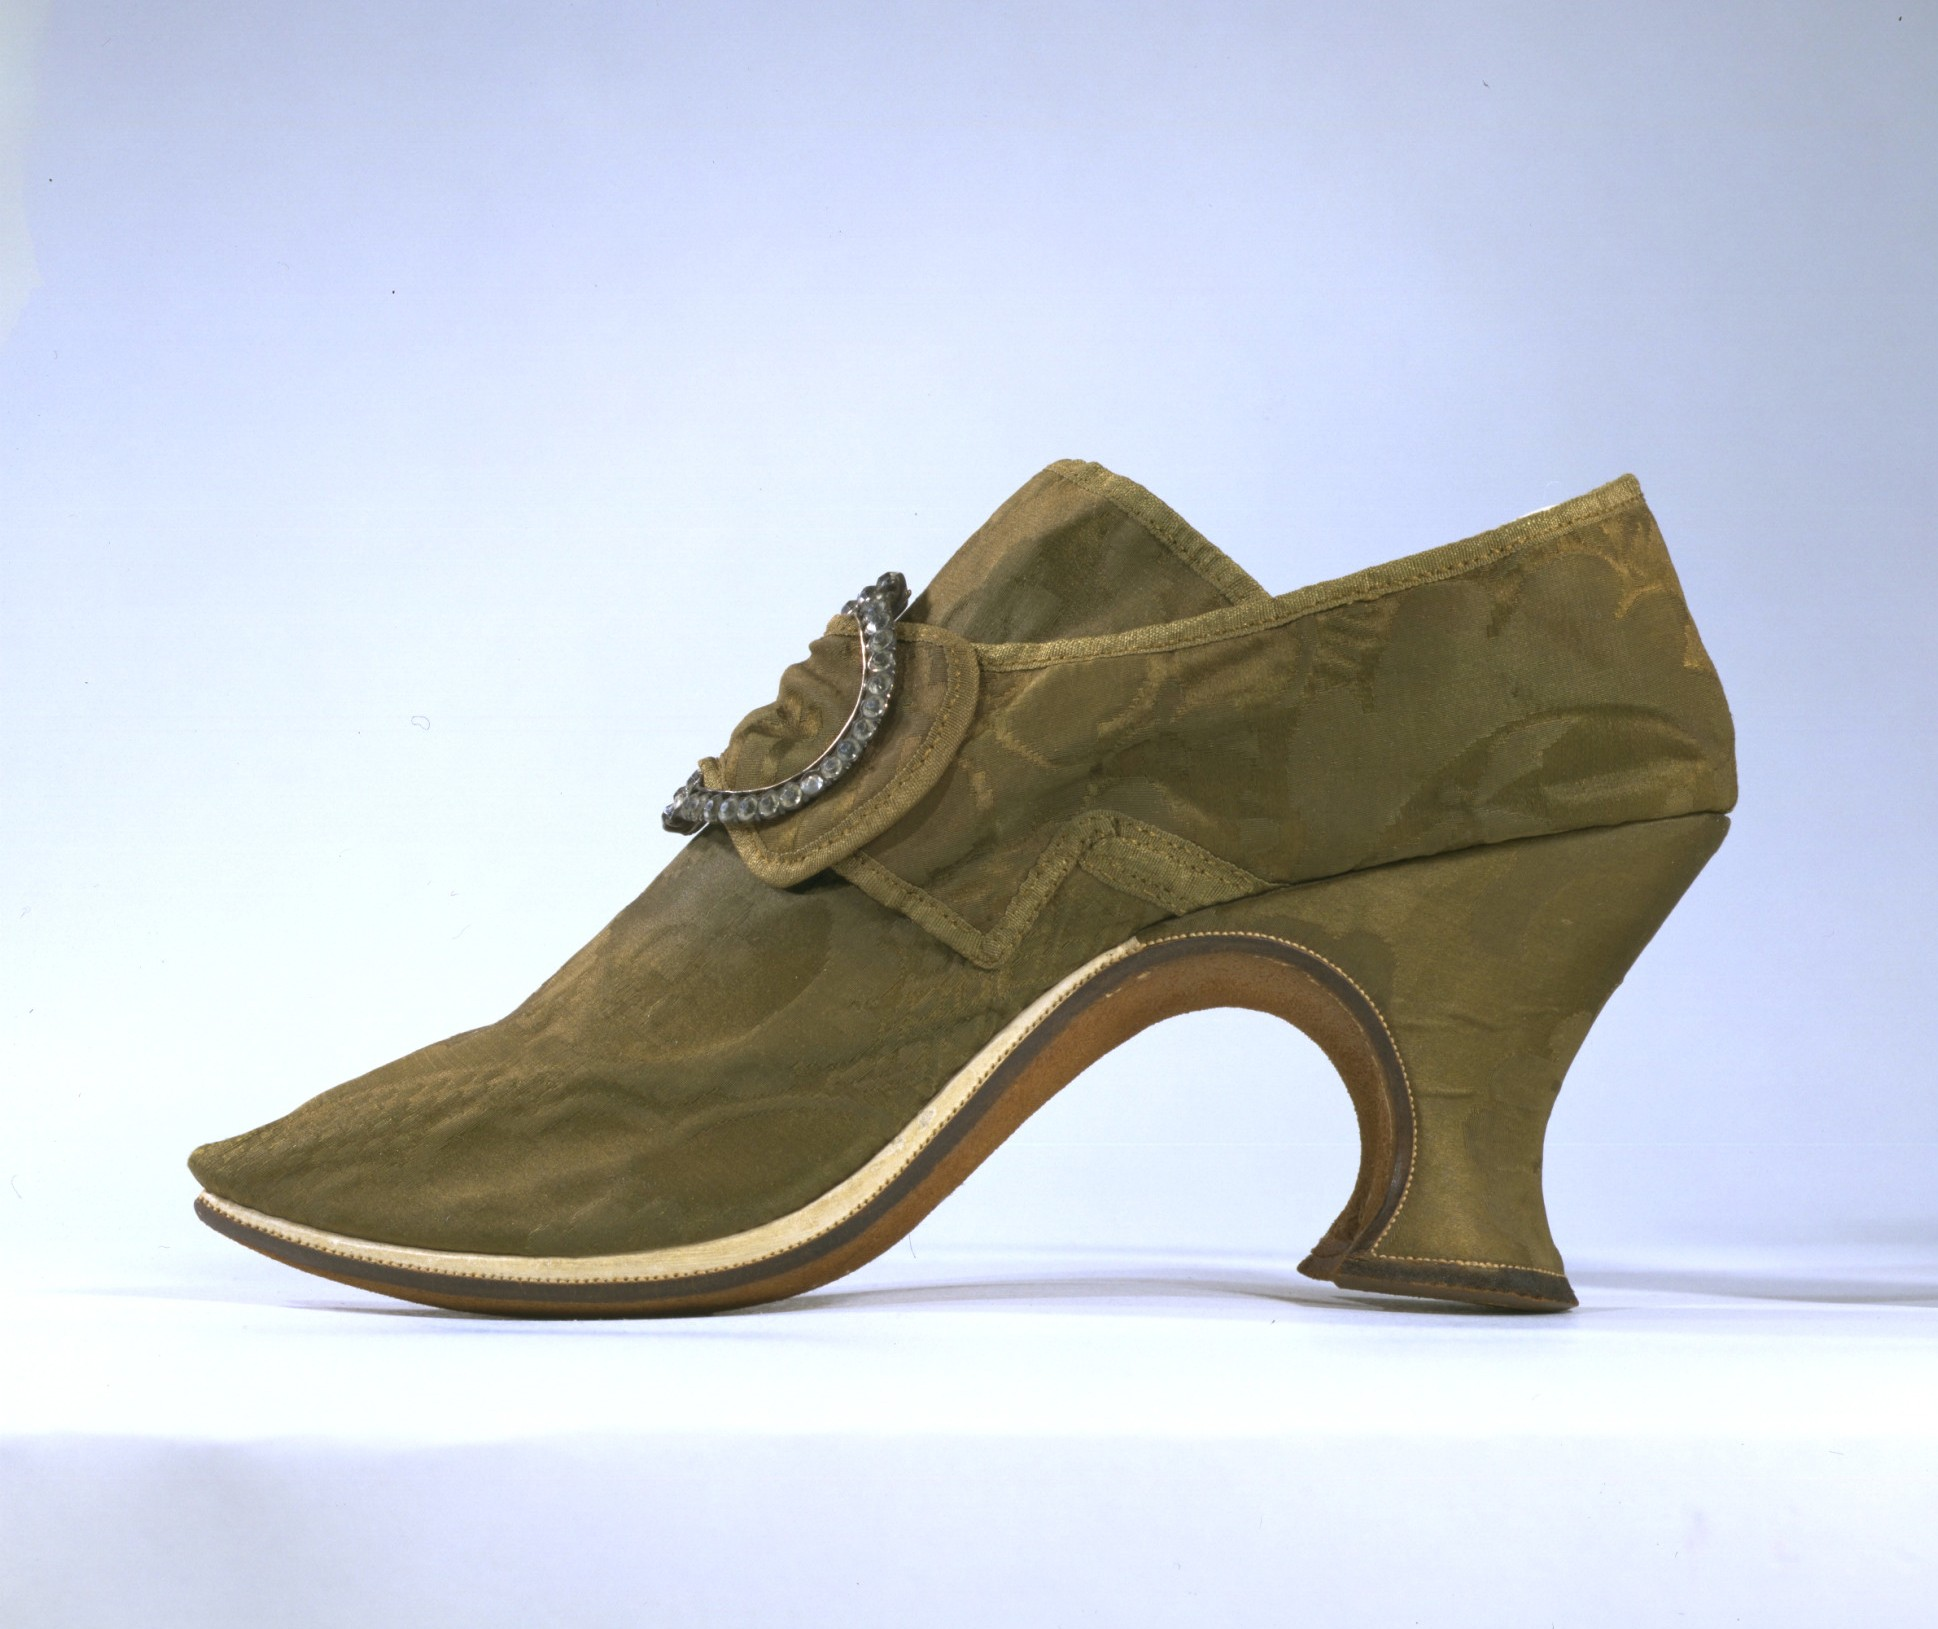 a8446735d56 Martha Washington purchased shoes from London shoemaker Gresham. Shoe  Women s  shoe. London